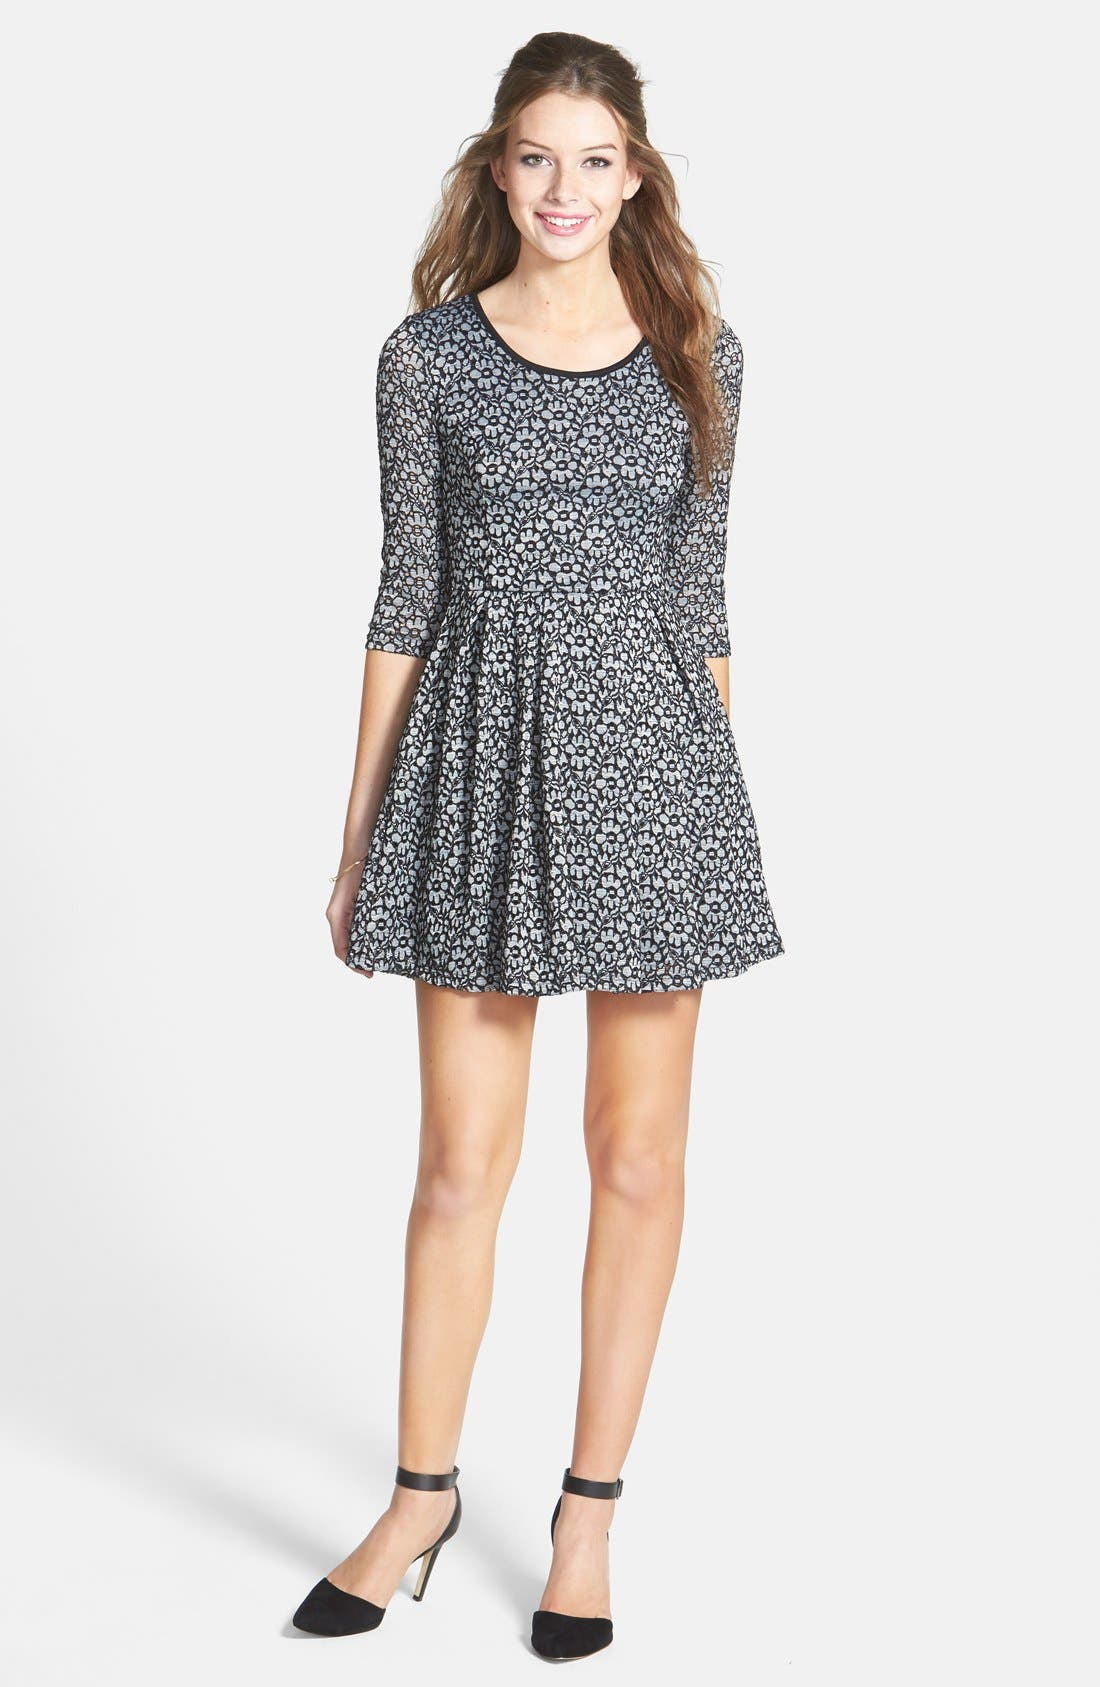 Alternate Image 1 Selected - Lush Textured Floral Lace Skater Dress